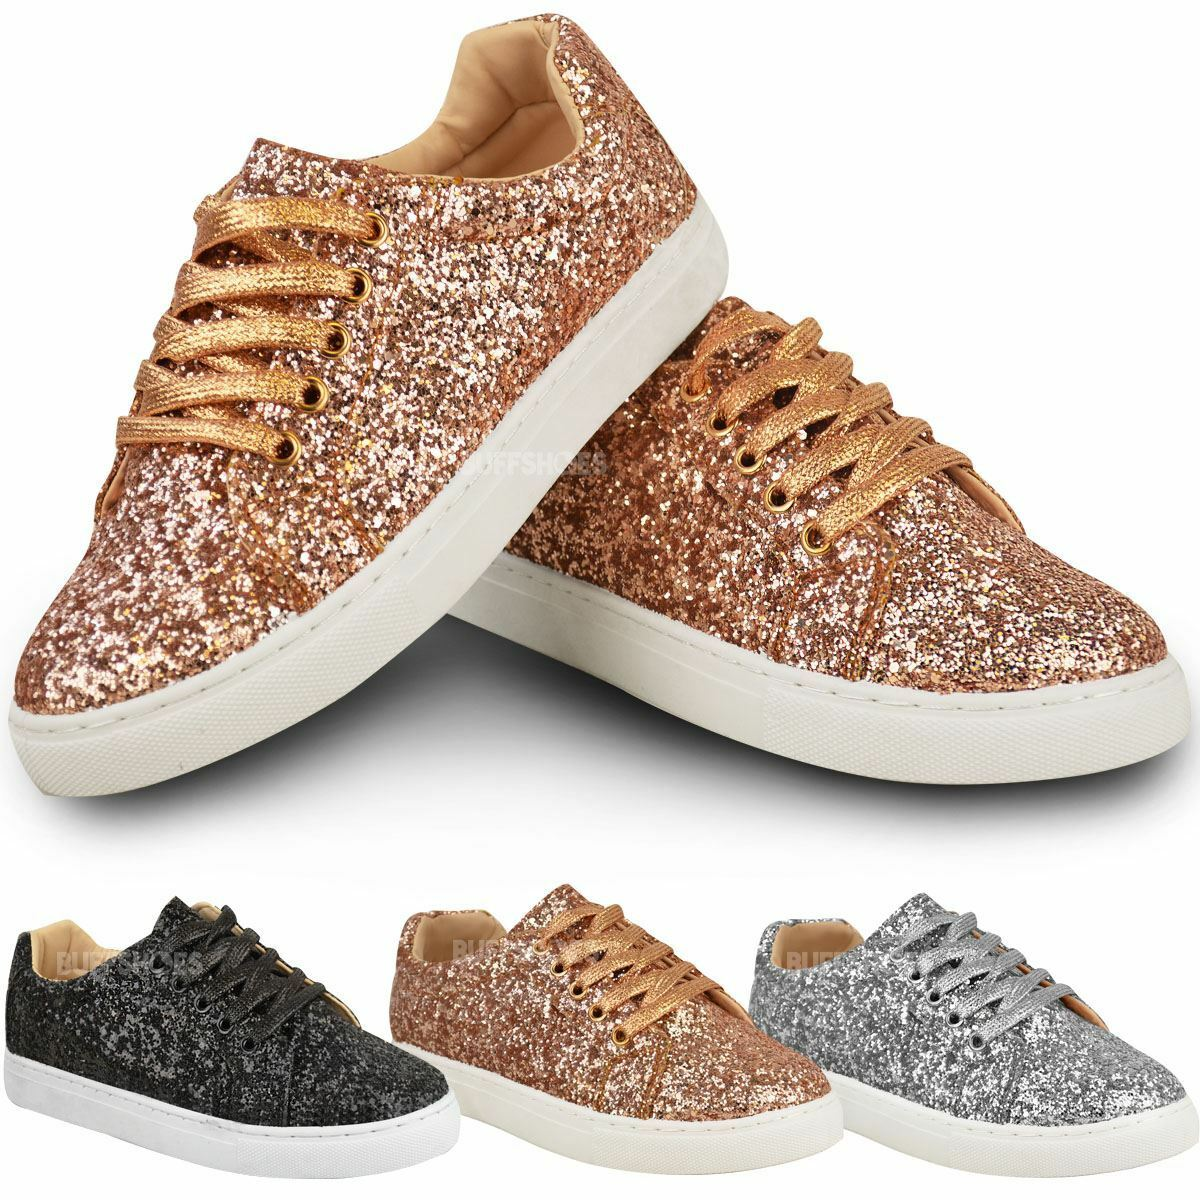 Mujer zapatos LADIES GLITTER LACE FLAT TRAINERS PUMPS SNEAKERS LACE GLITTER UP SPARKLY Talla ea3b40